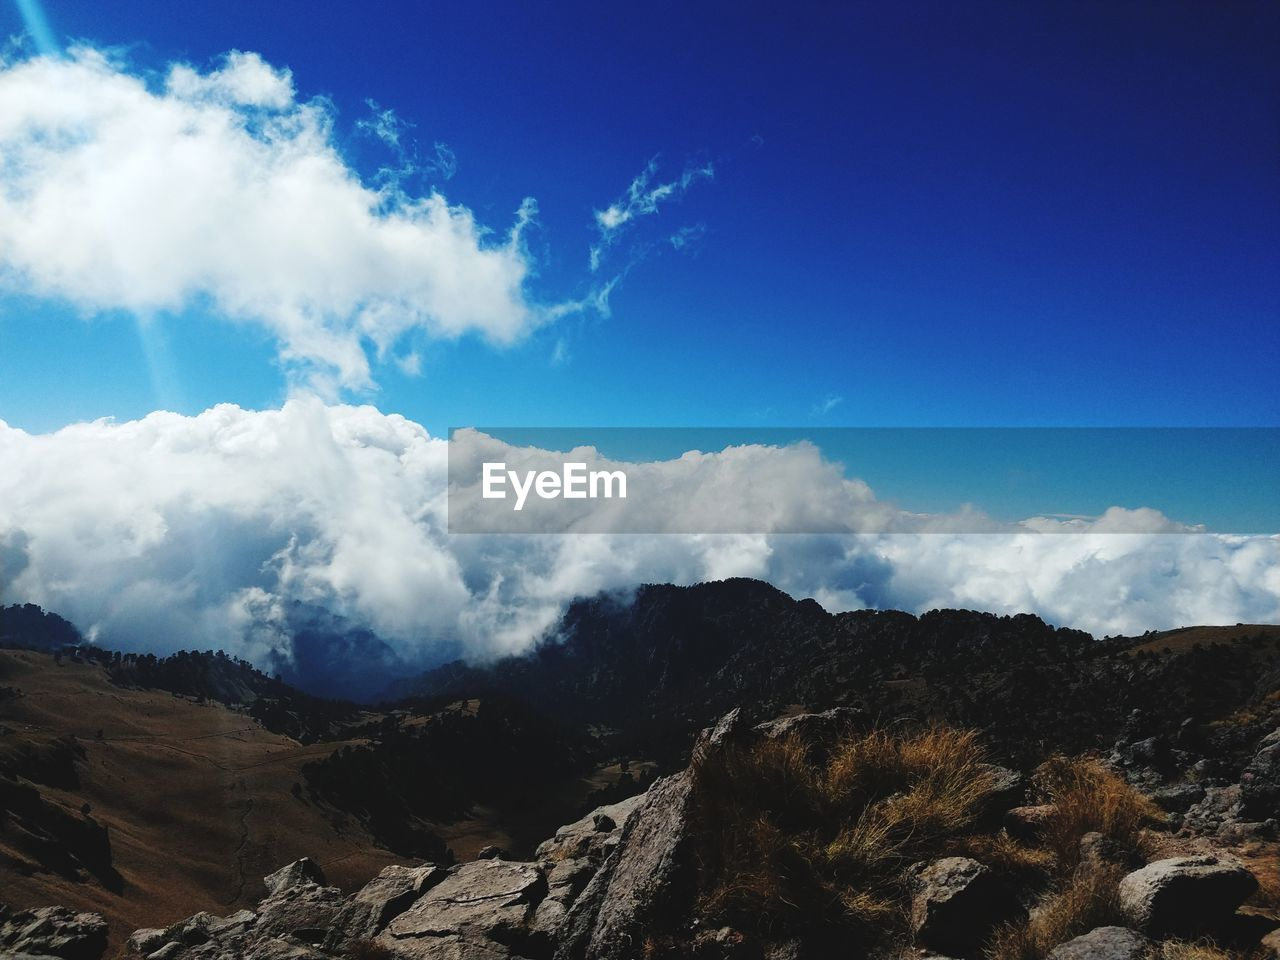 cloud - sky, sky, scenics - nature, beauty in nature, tranquil scene, tranquility, mountain, non-urban scene, day, blue, no people, nature, landscape, environment, mountain range, idyllic, outdoors, rock, remote, low angle view, mountain ridge, mountain peak